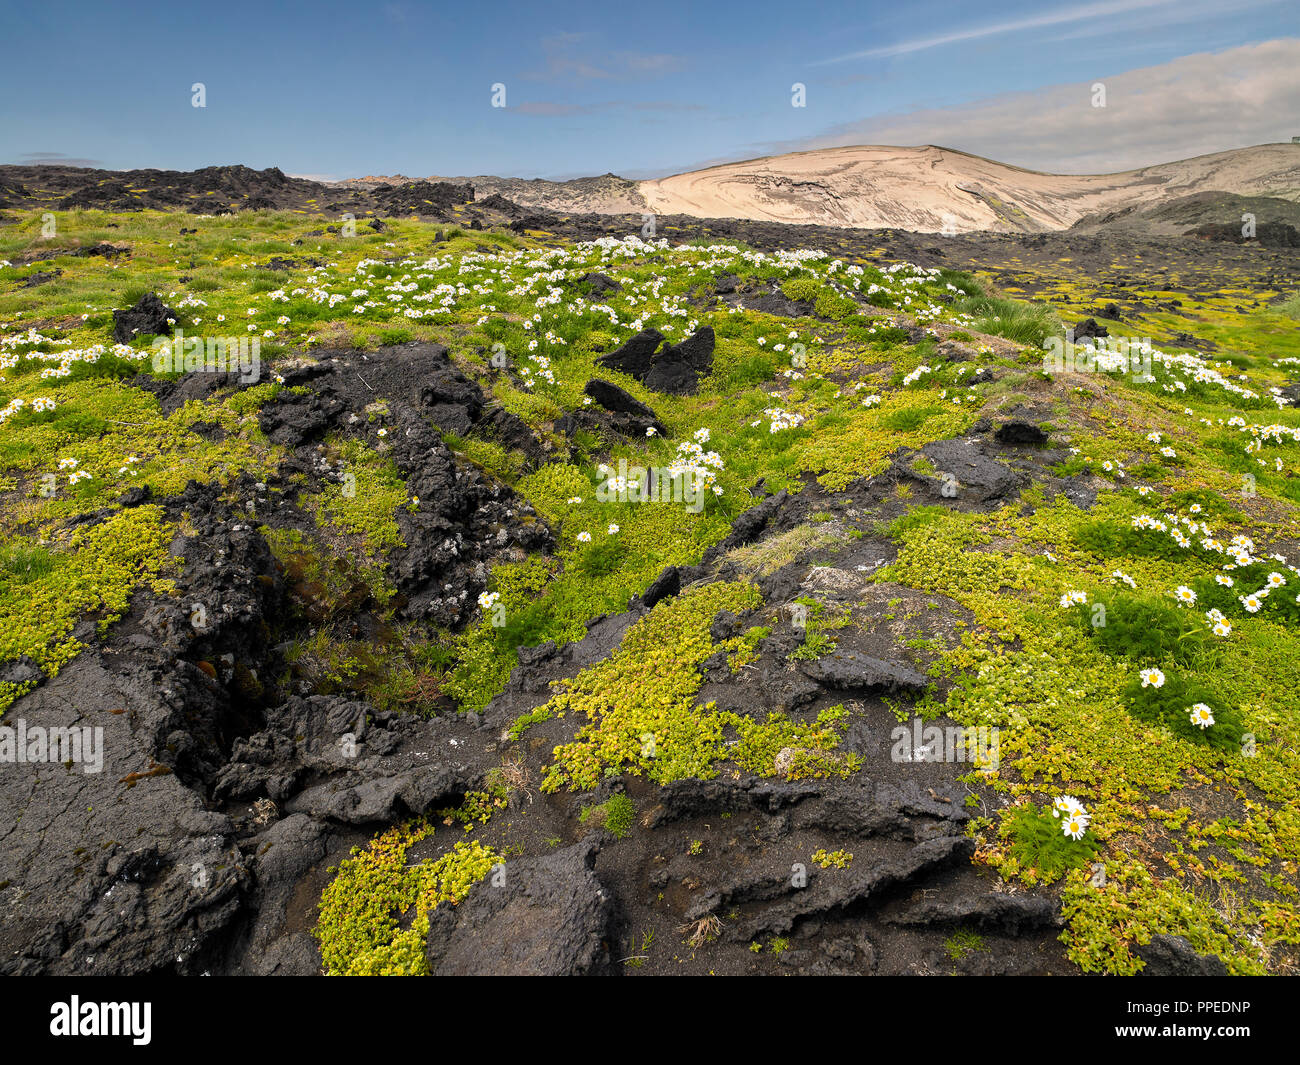 Regrowth of flowers and plants, Surtsey Island, Westman Islands, Iceland - Stock Image